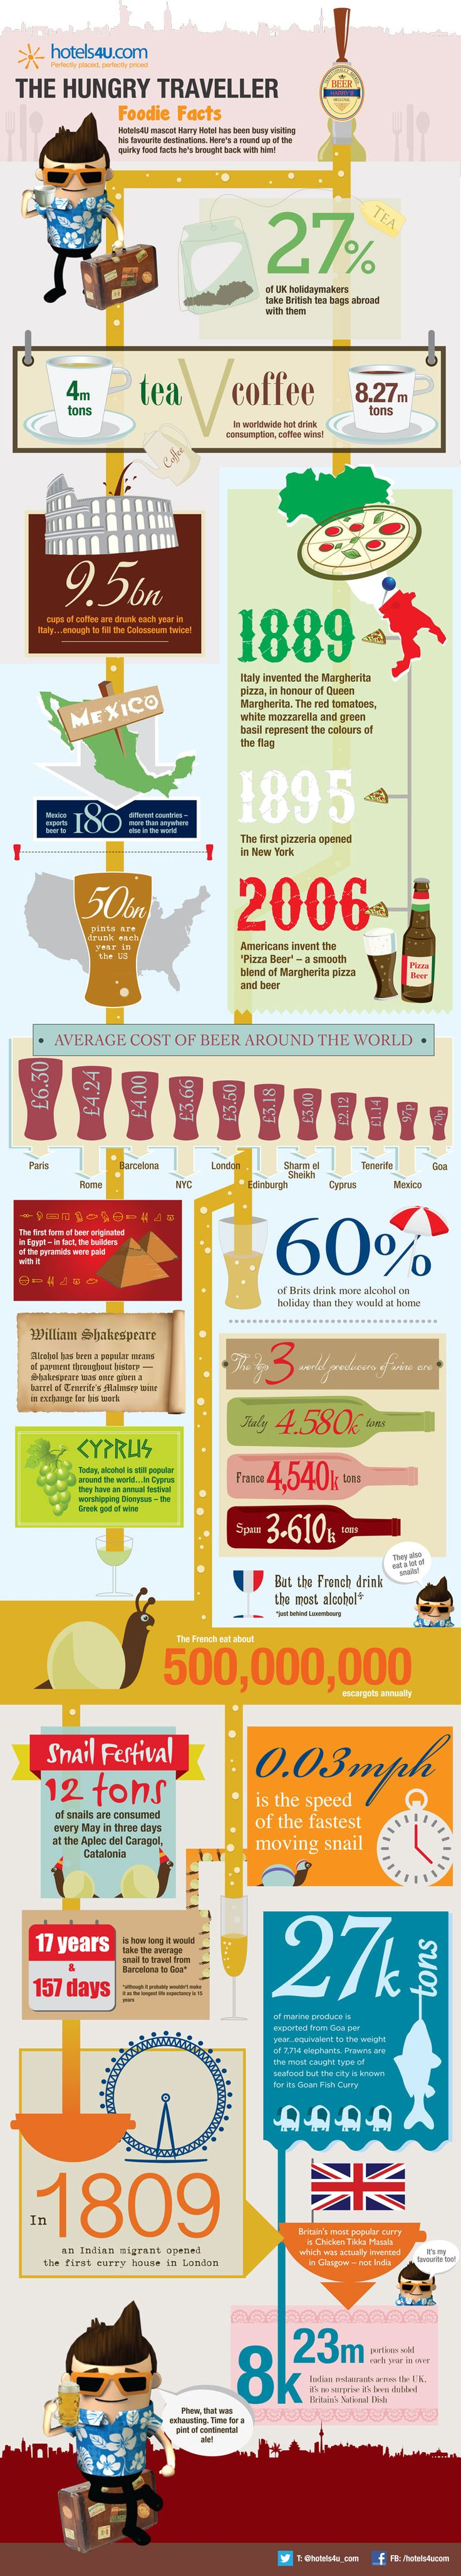 The Hungry Traveller[INFOGRAPHIC]